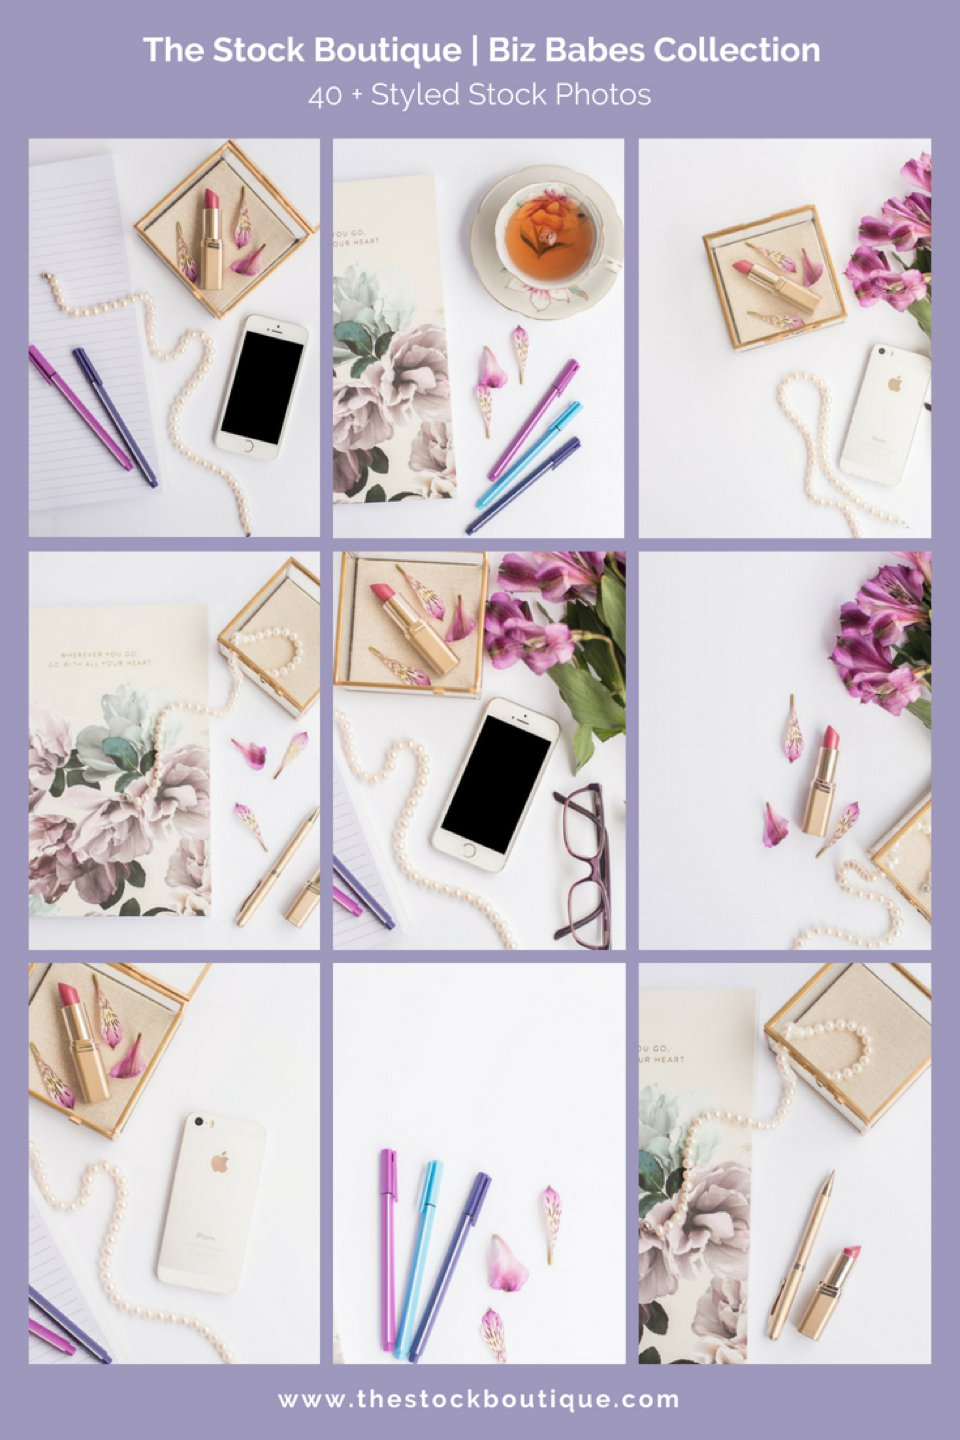 Female styled stock photography. We giveaway a stock photo every month when you subscribe! www.thestockboutique.com  #stockphoto   #femaleentrepreneur#smallbusiness